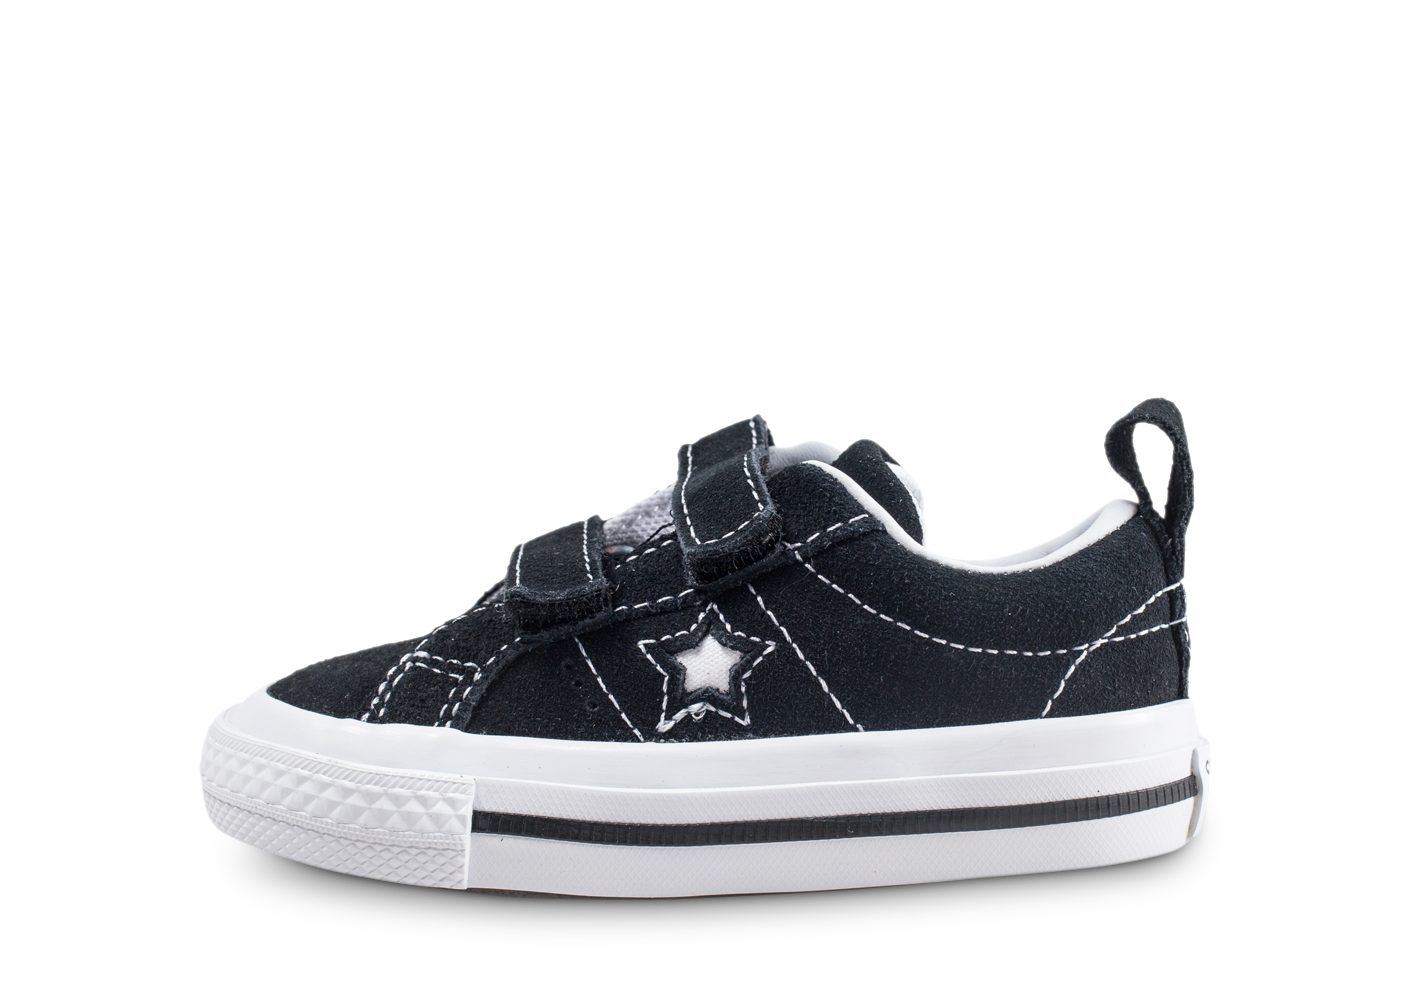 the best attitude 47909 8774f Converse One Star 2v Ox Noire Et Blanche Bébé Baskets Converse